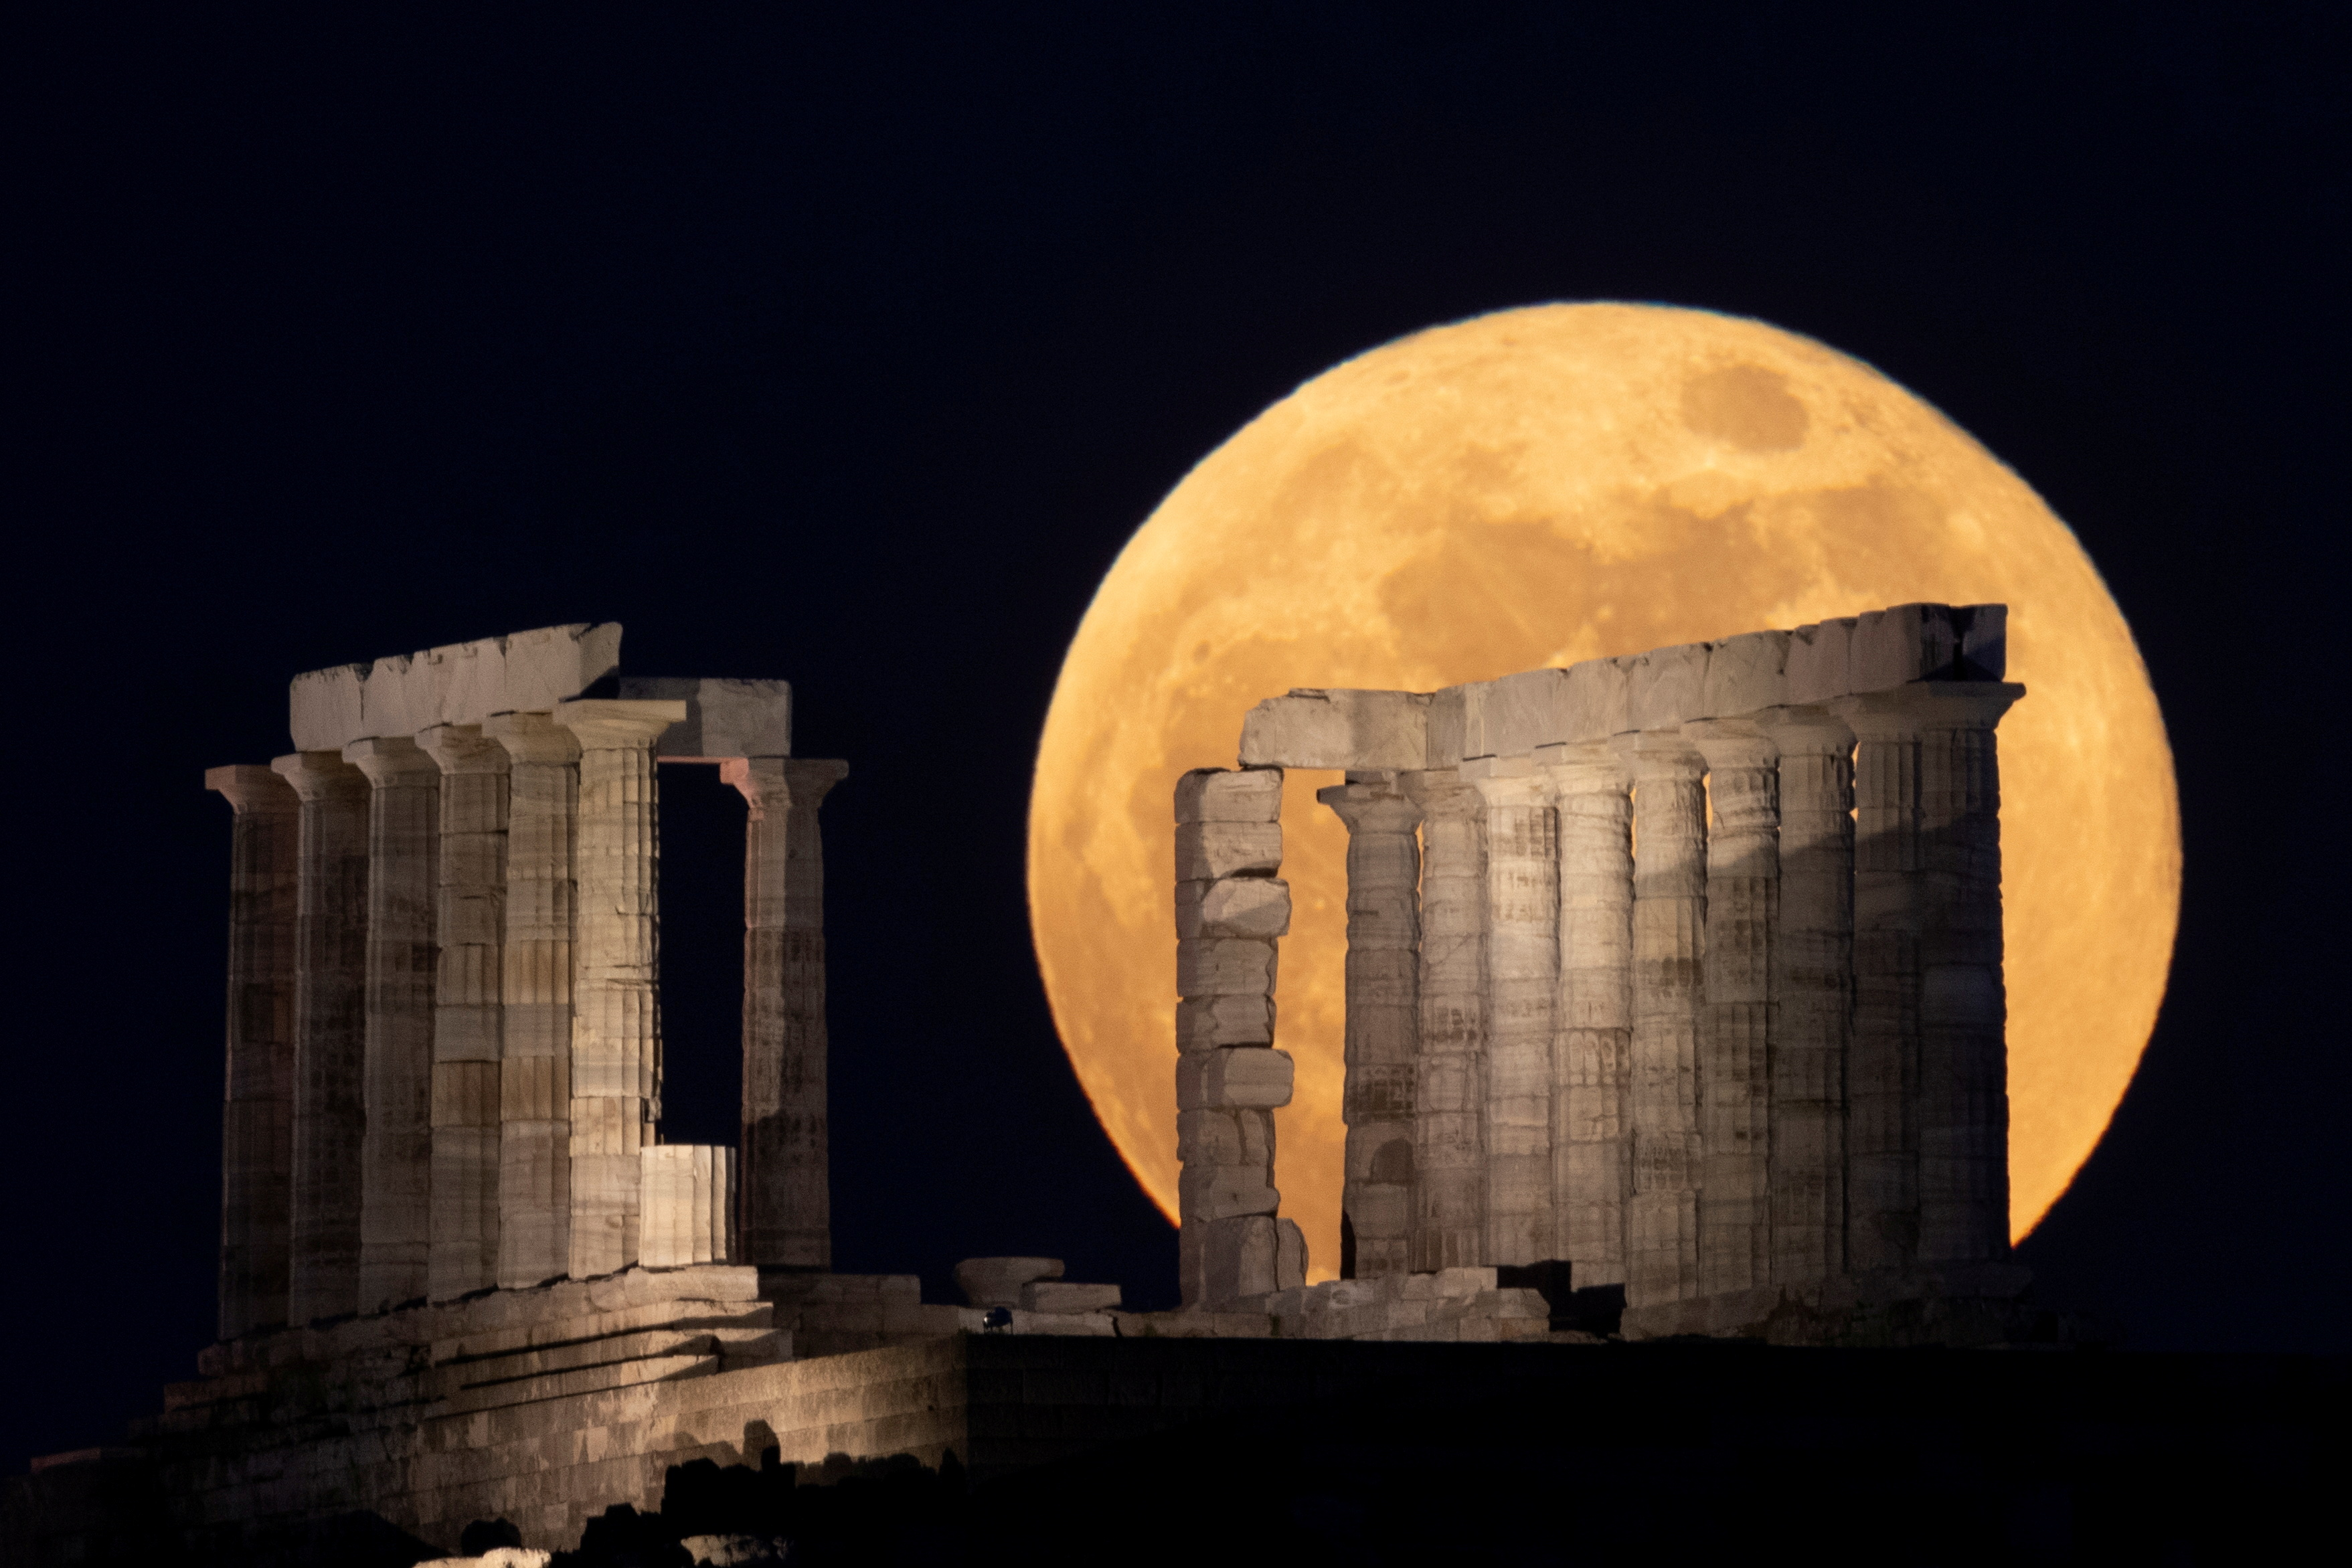 """The full moon, known as the """"Super Flower Moon"""" rises over the Temple of Poseidon in Cape Sounion, near Athens, Greece, May 26, 2021. REUTERS/Alkis Konstantinidis"""